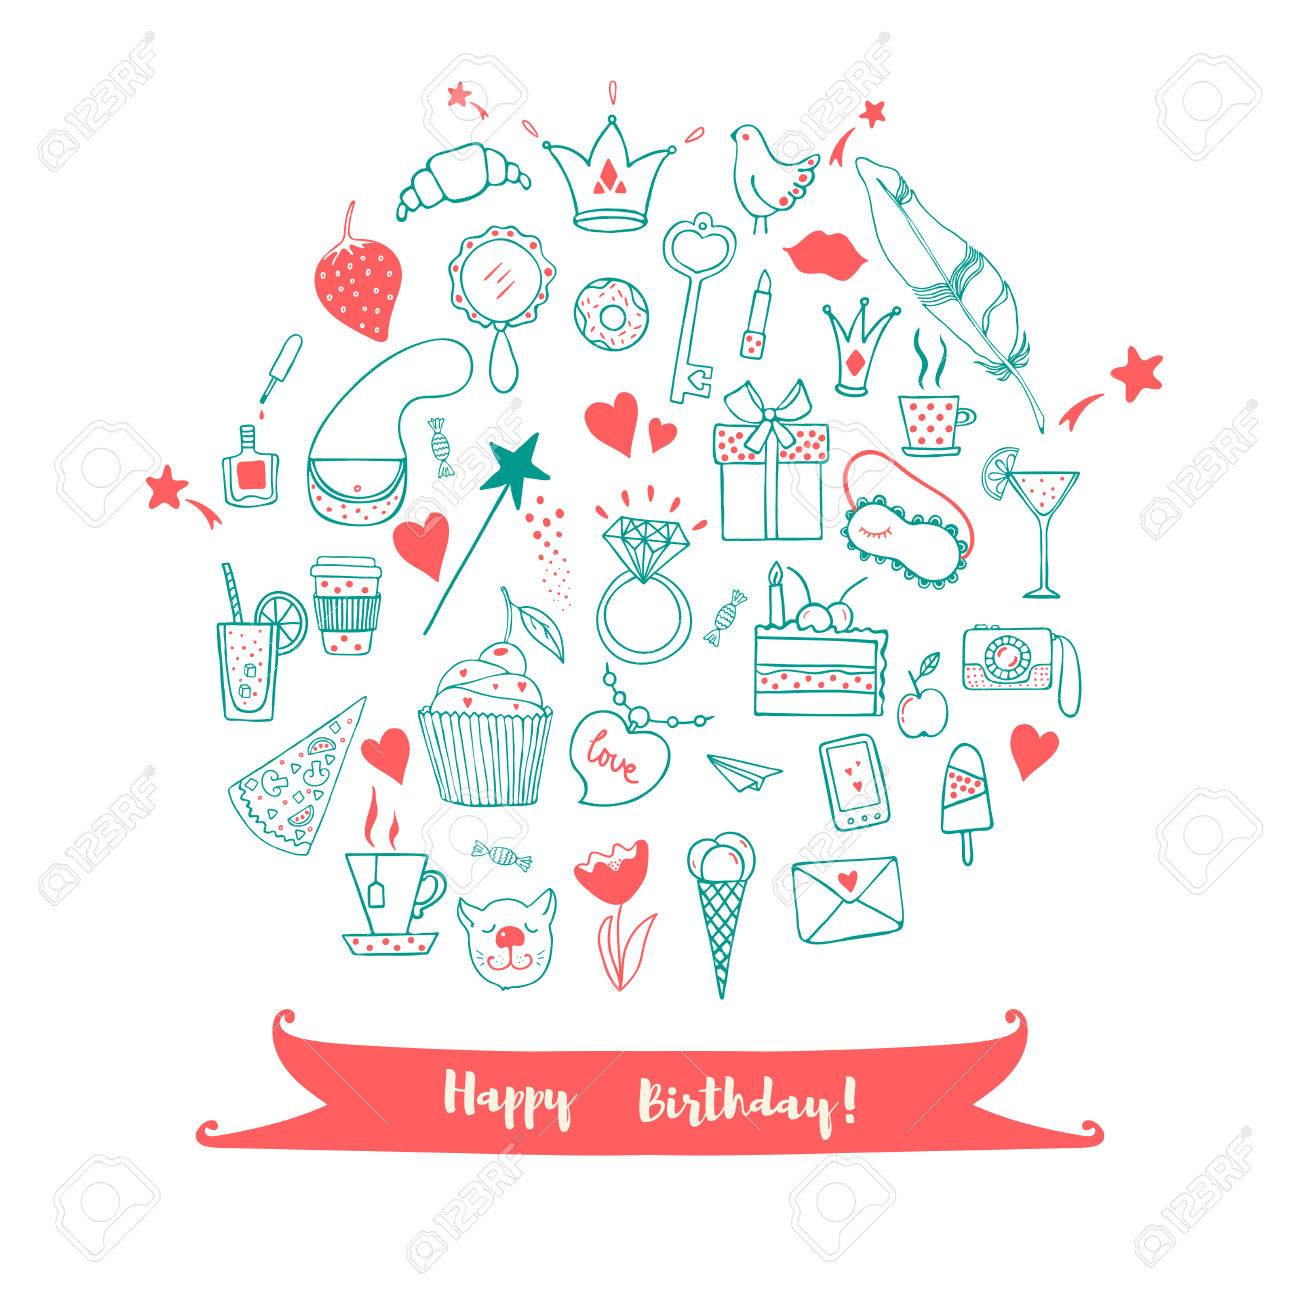 Happy birthday greeting card hand drawn doodle vector set with happy birthday greeting card hand drawn doodle vector set with presents for girl modern kristyandbryce Image collections